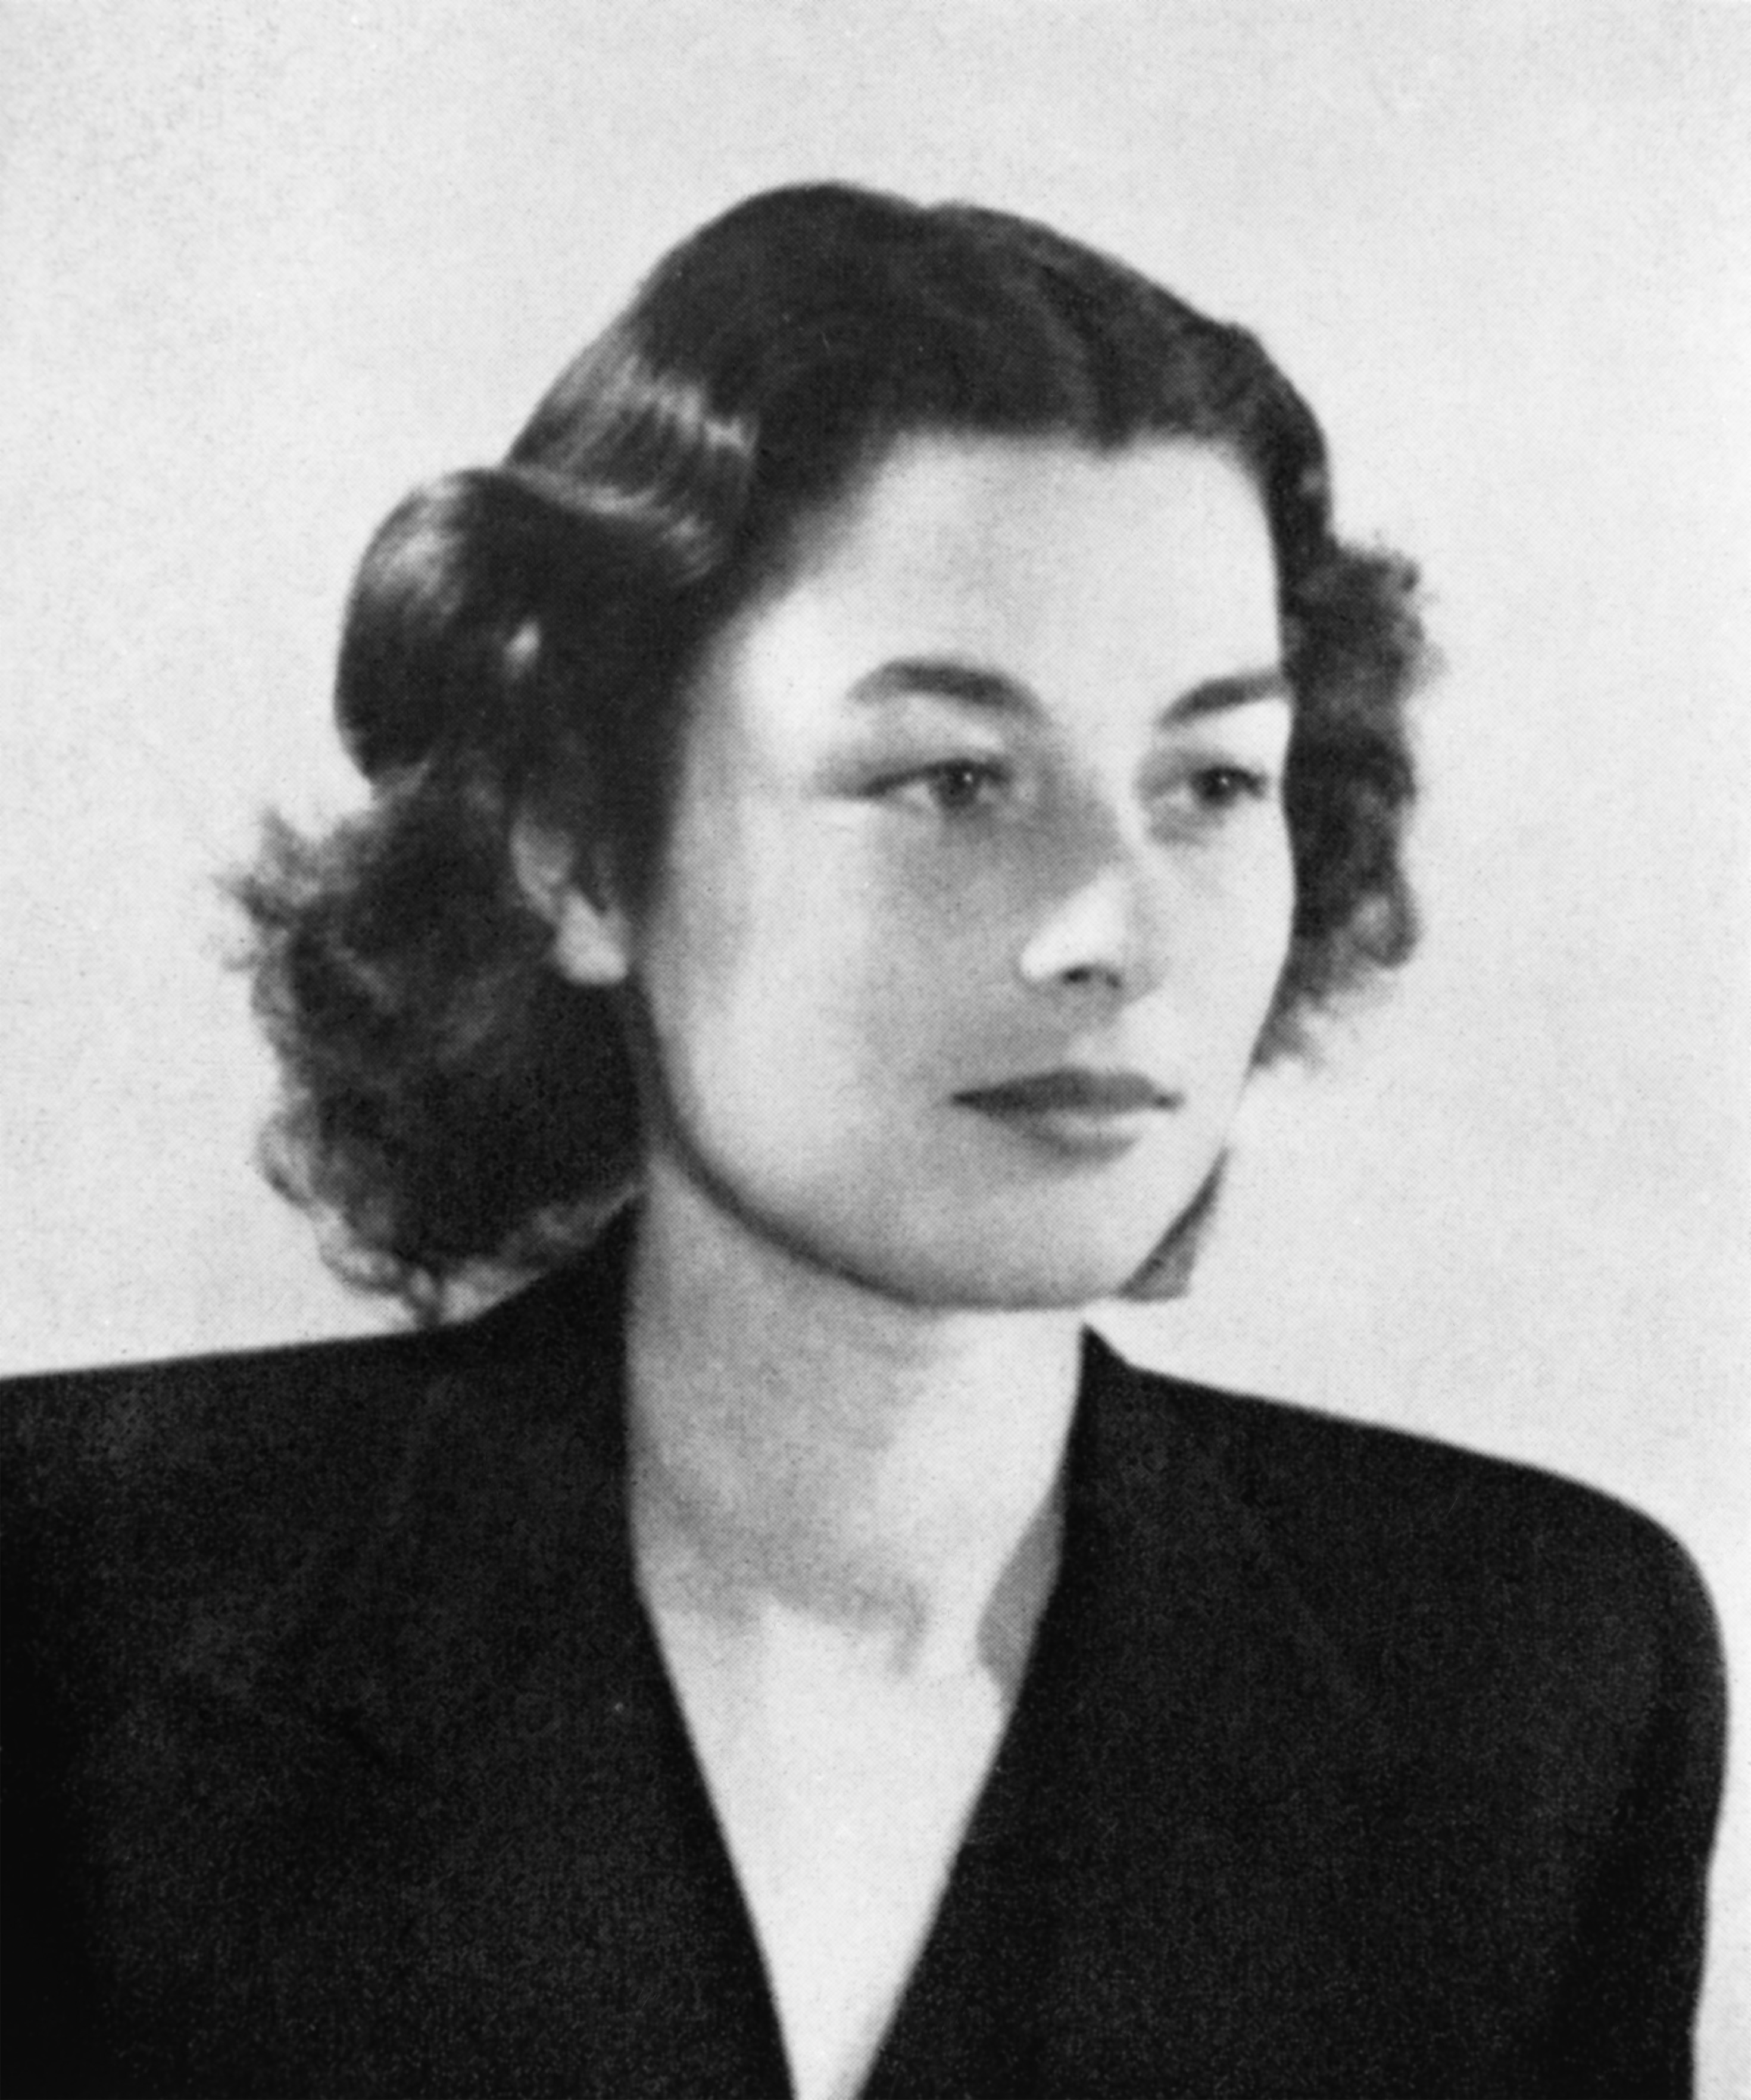 Violette Szabo, whose undercover work for the SOE in occupied France  inspired the film Carve